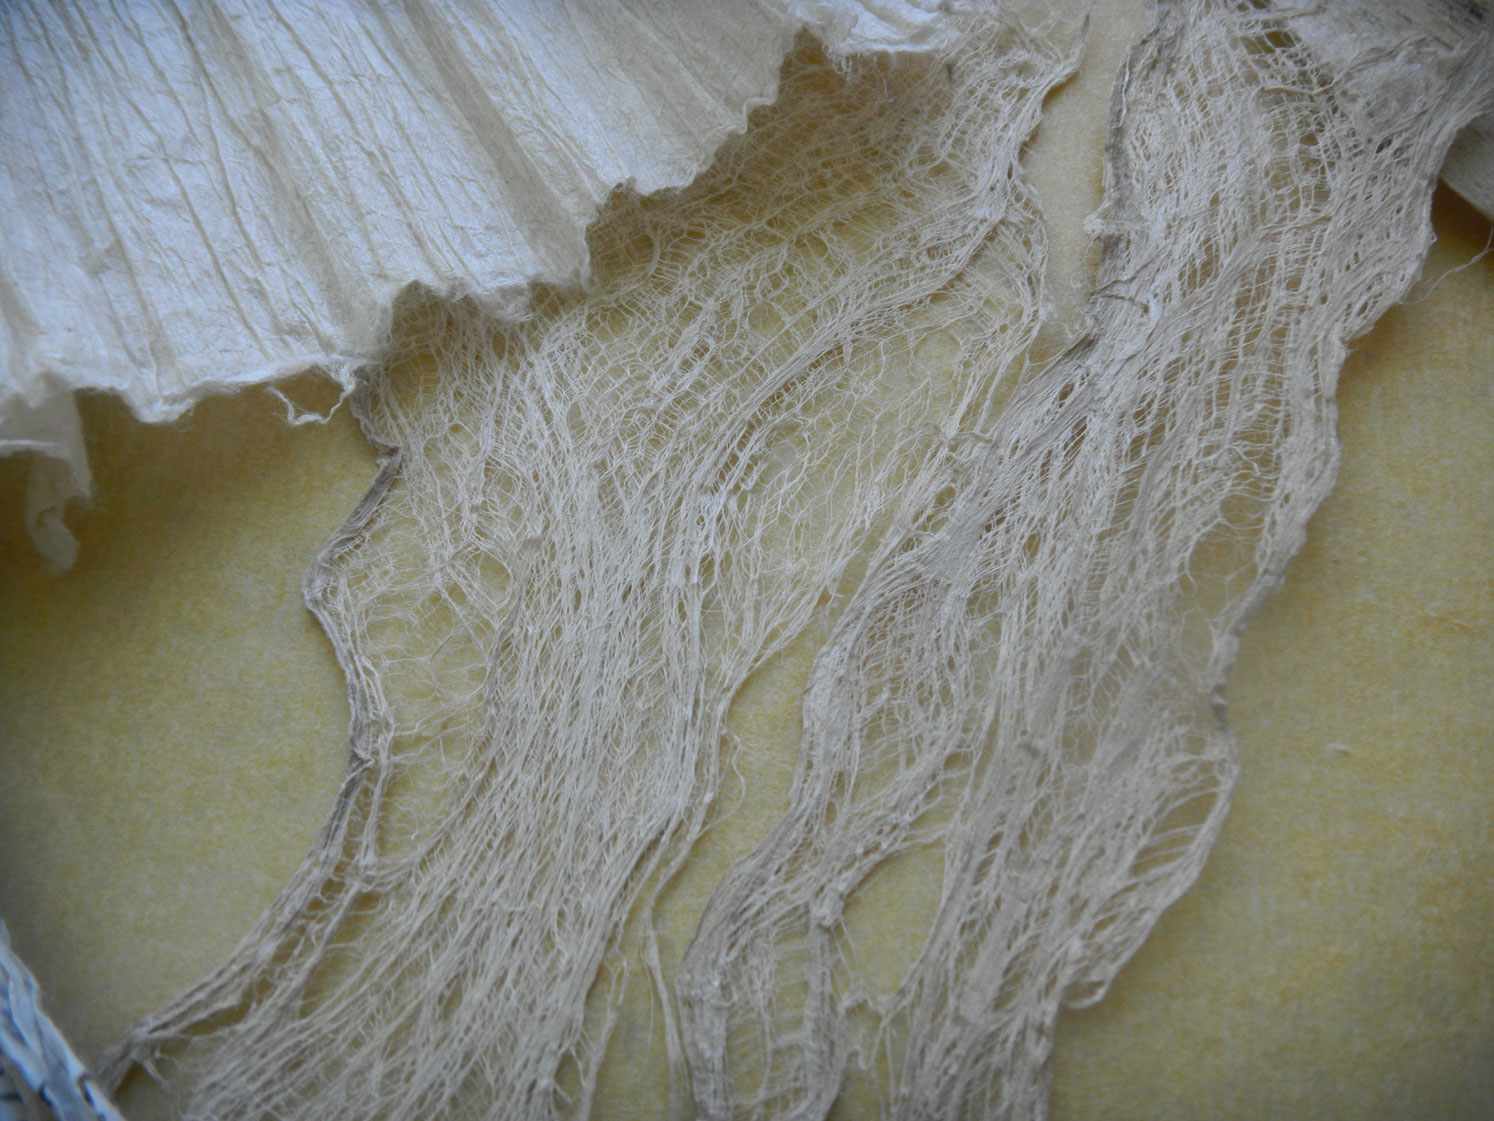 Aimee showed us how to make paper-lace. This is her sample.